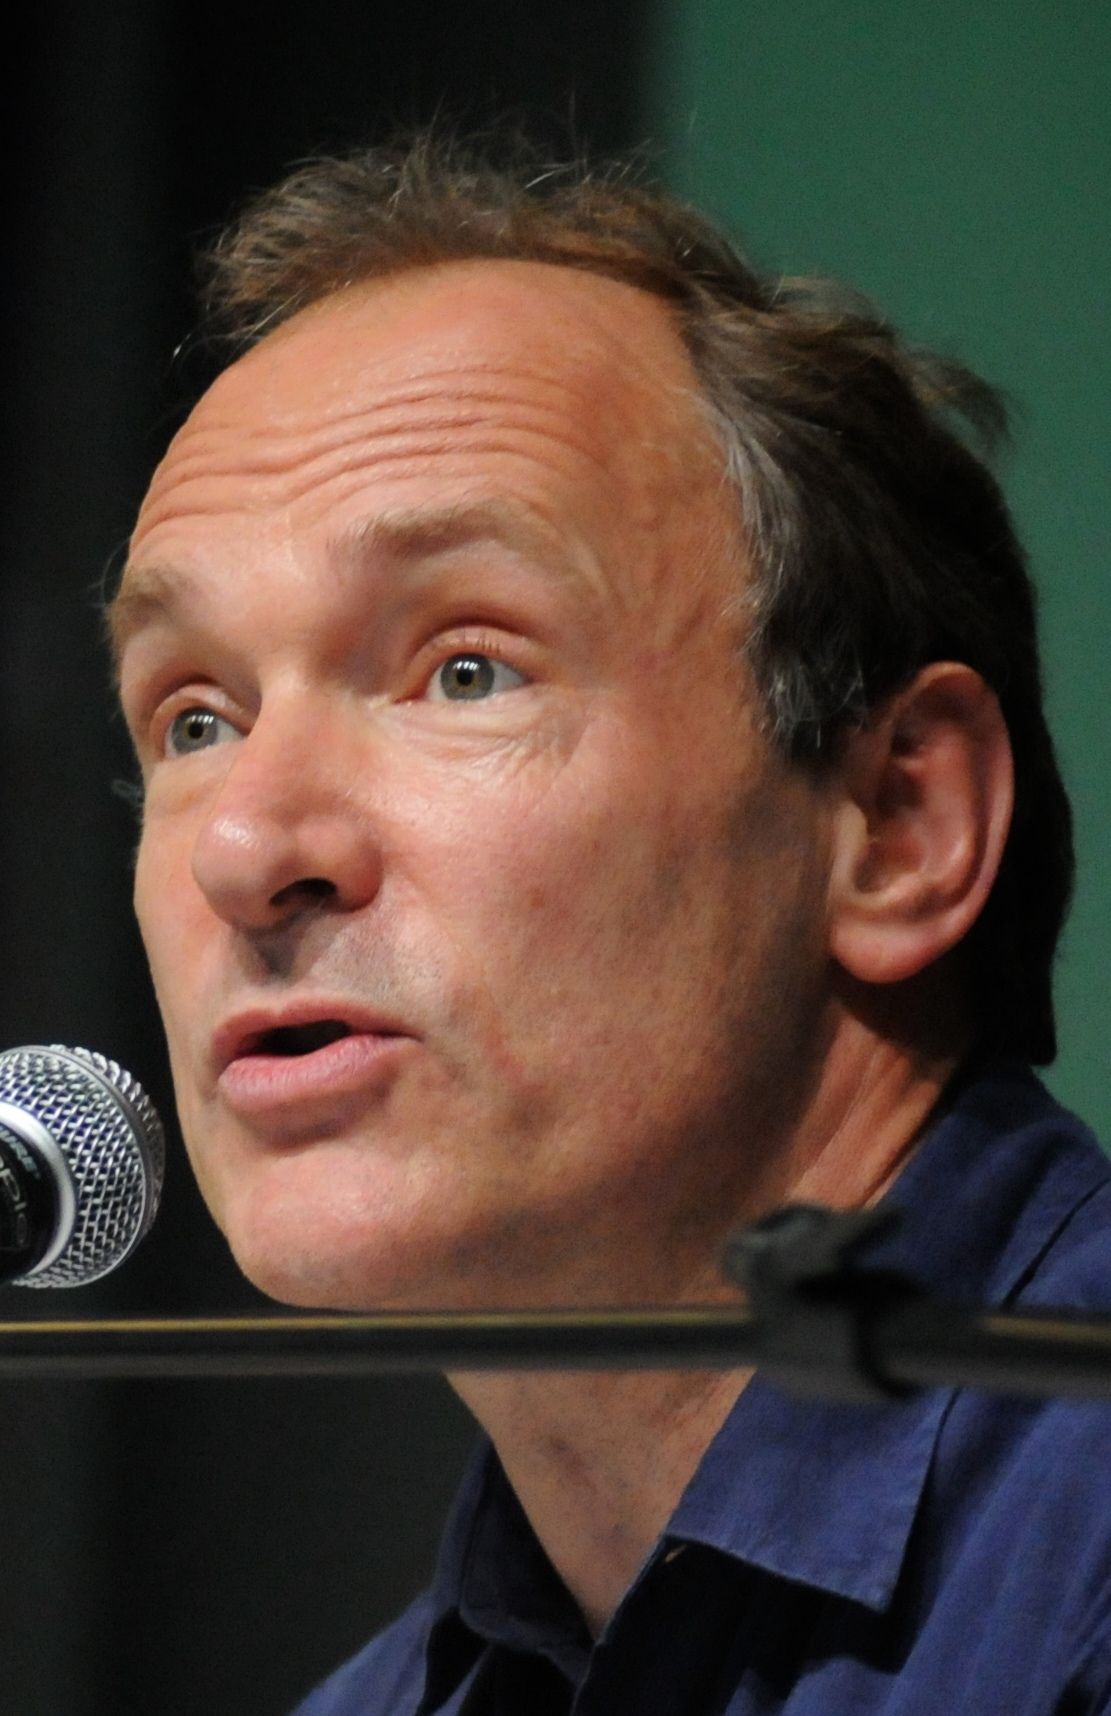 image of Tim Berners-Lee